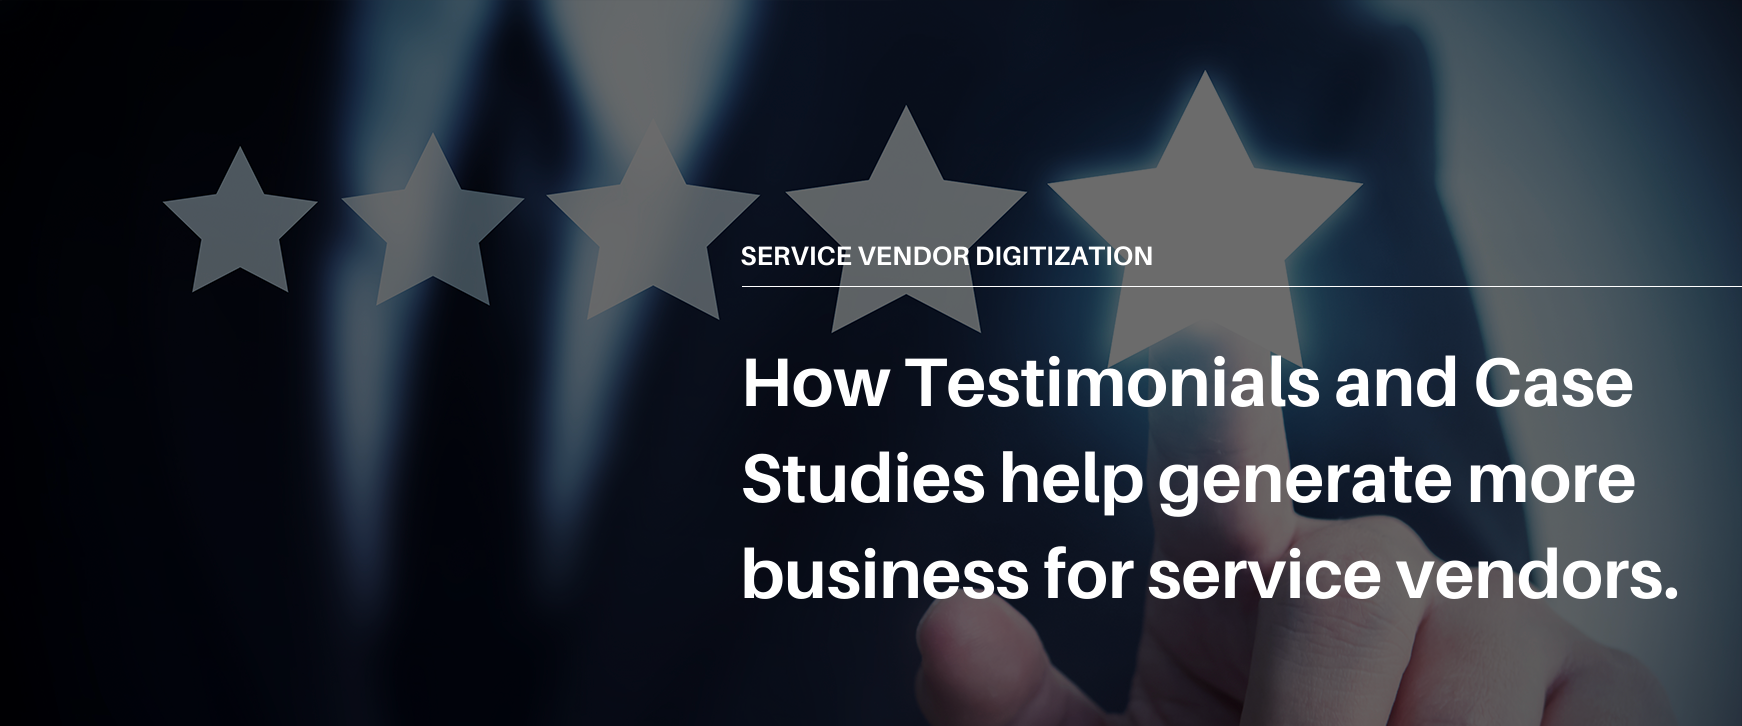 How Testimonials and Case Studies help generate more business for service vendors